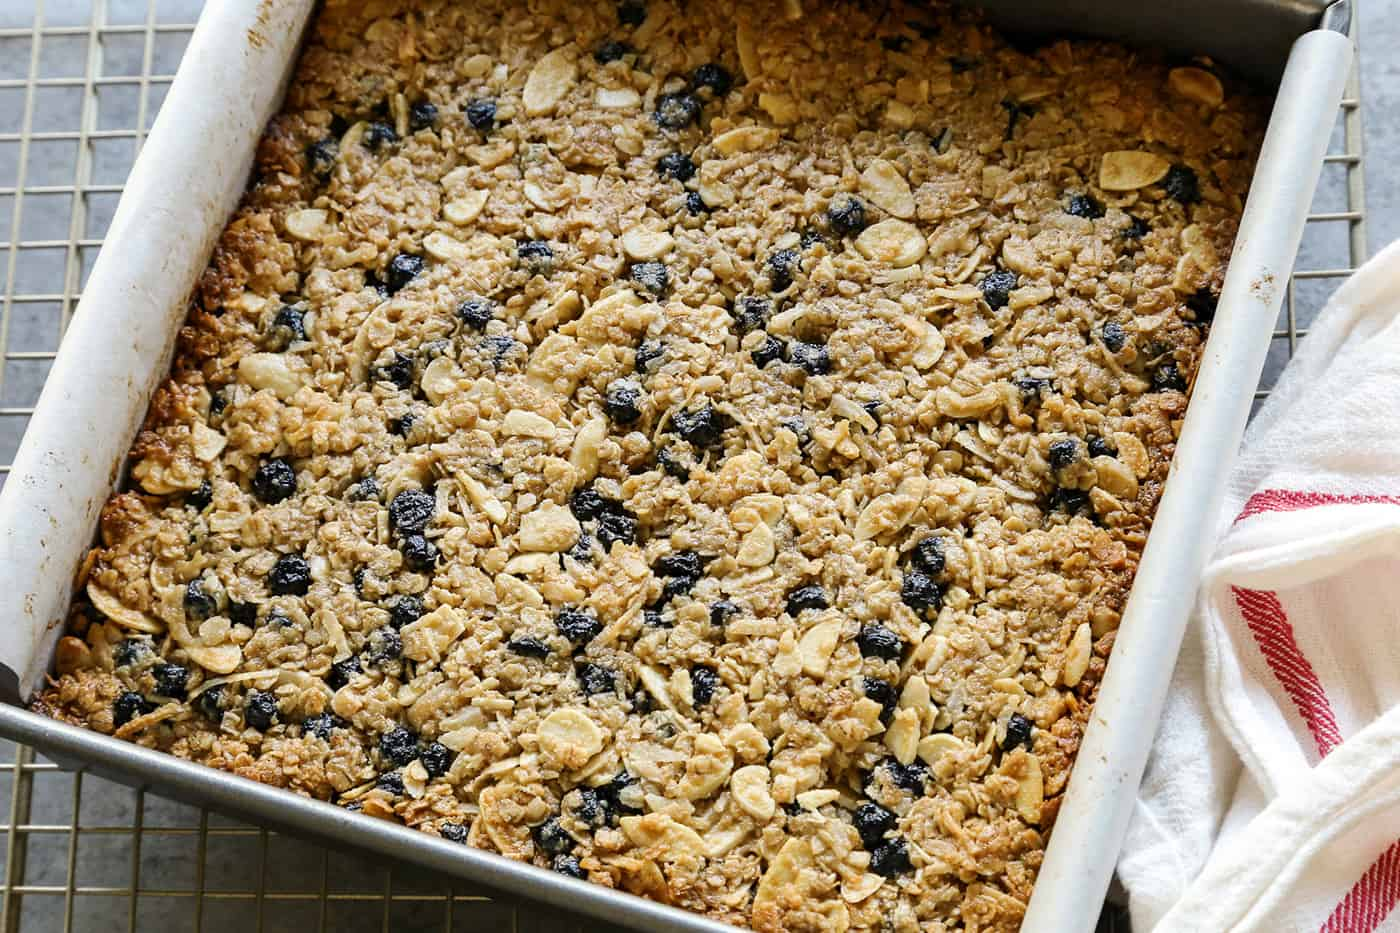 A pan of chewy granola bars ready to be baked